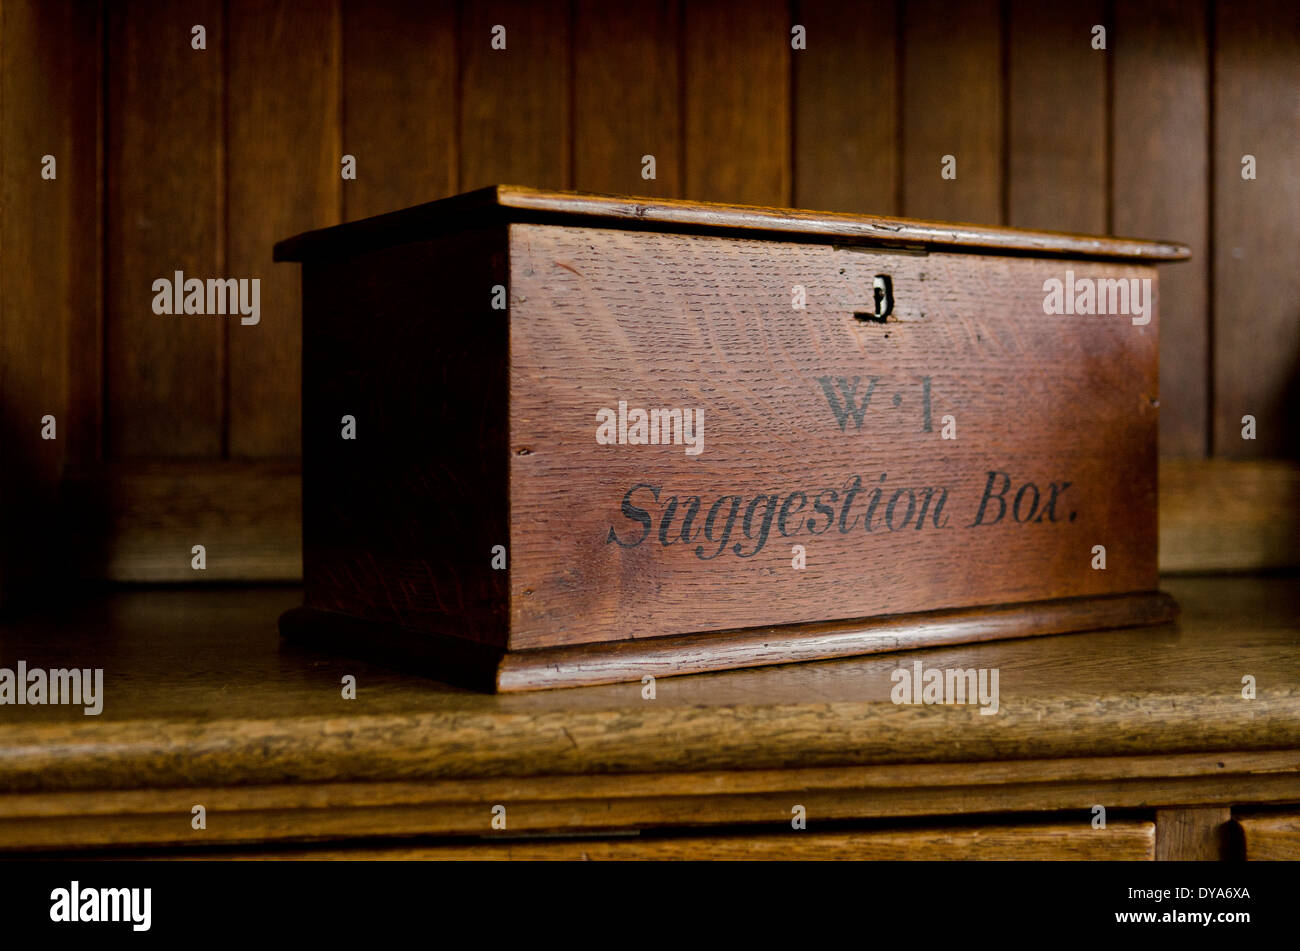 WI, Womens institute, suggestion box, wooden, on wooden kitchen cabinet - Stock Image